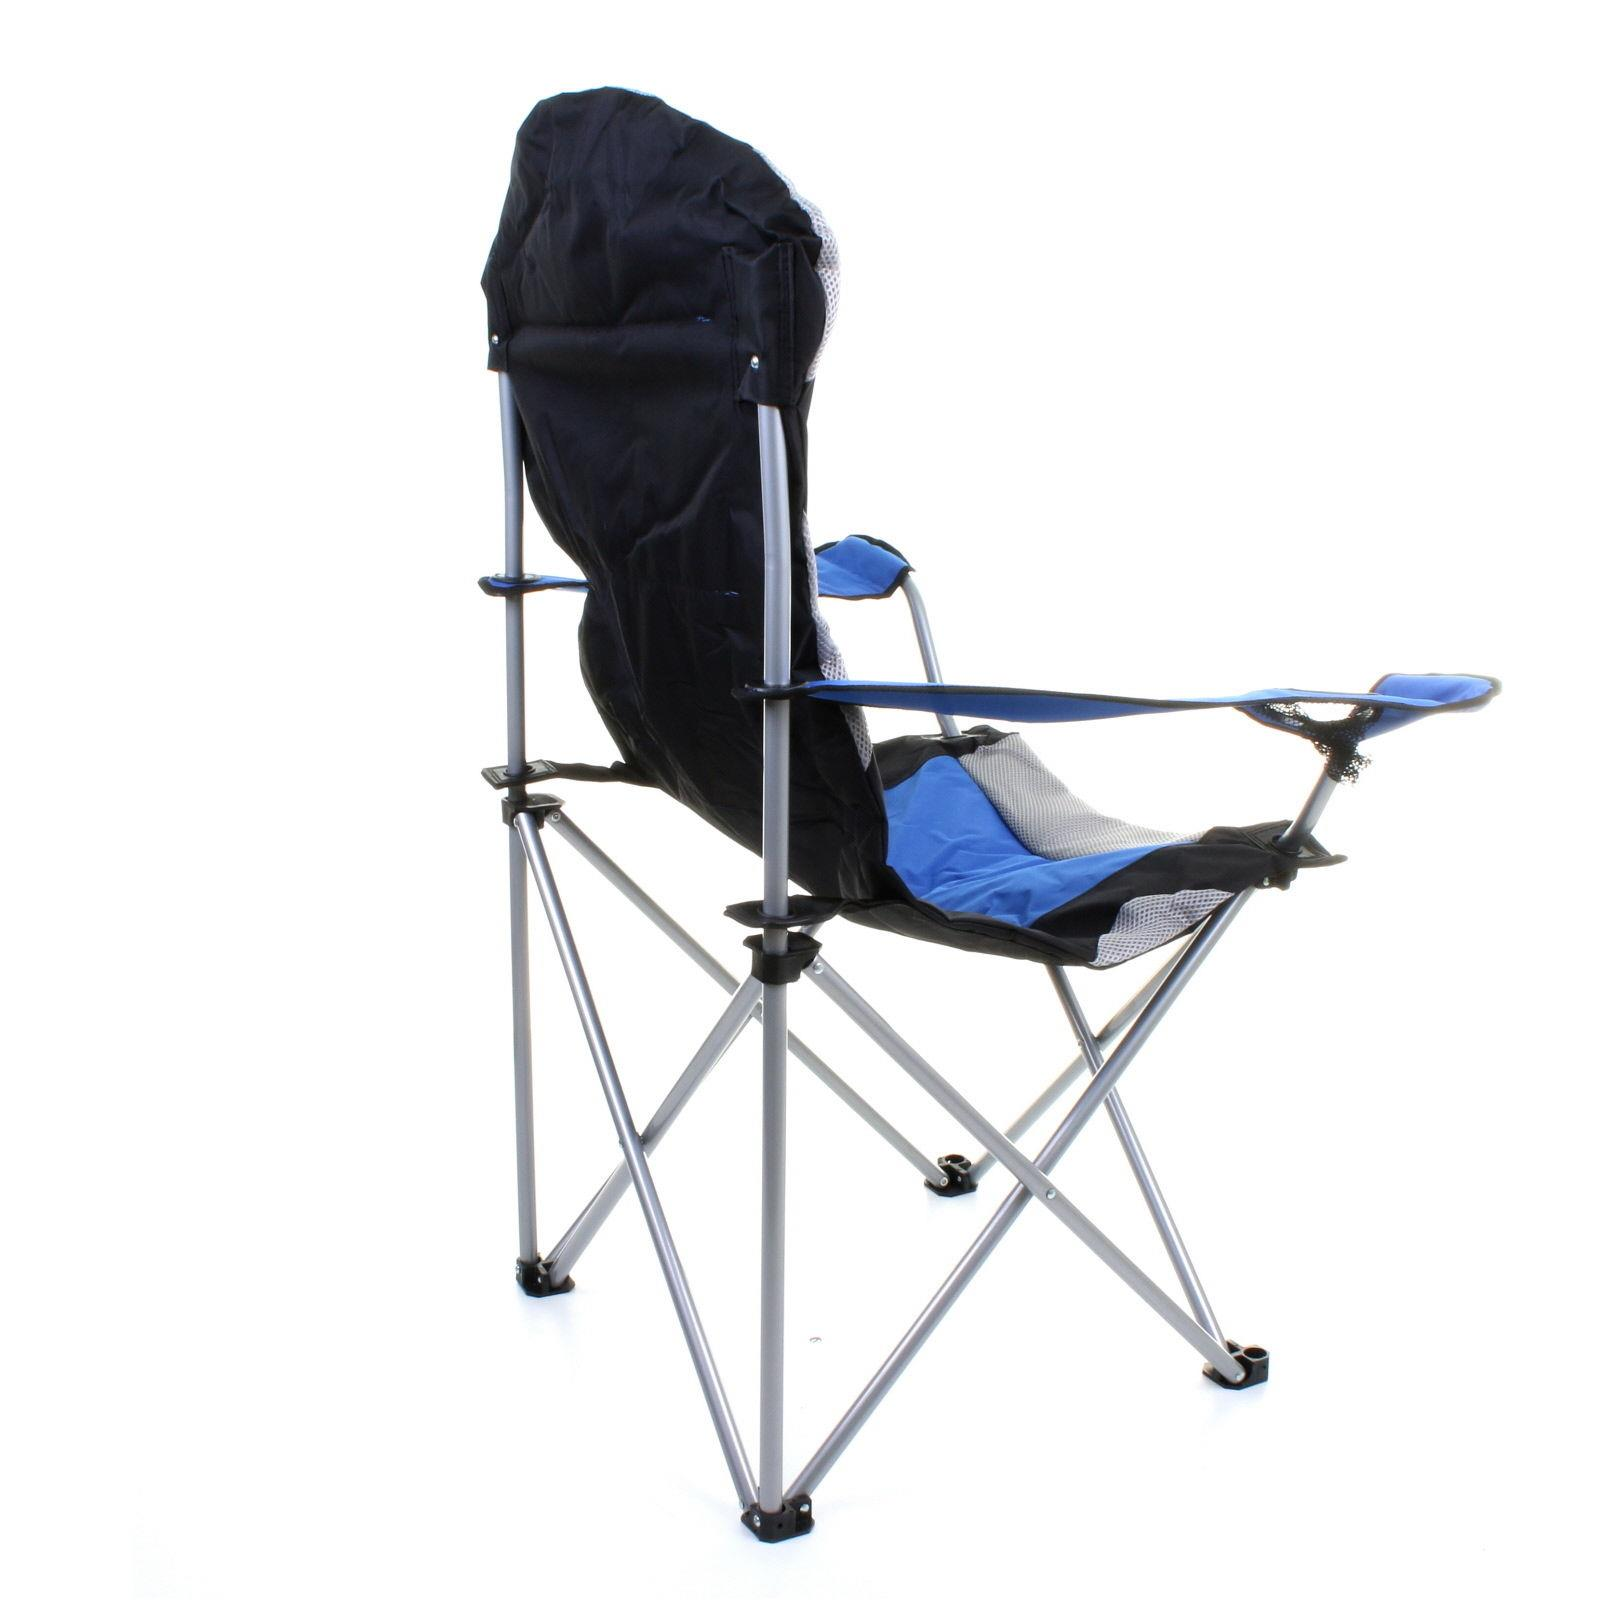 thumbnail 5 - Folding Camping Deluxe Chairs Heavy Duty Luxury Padded with Cup Holder High Back